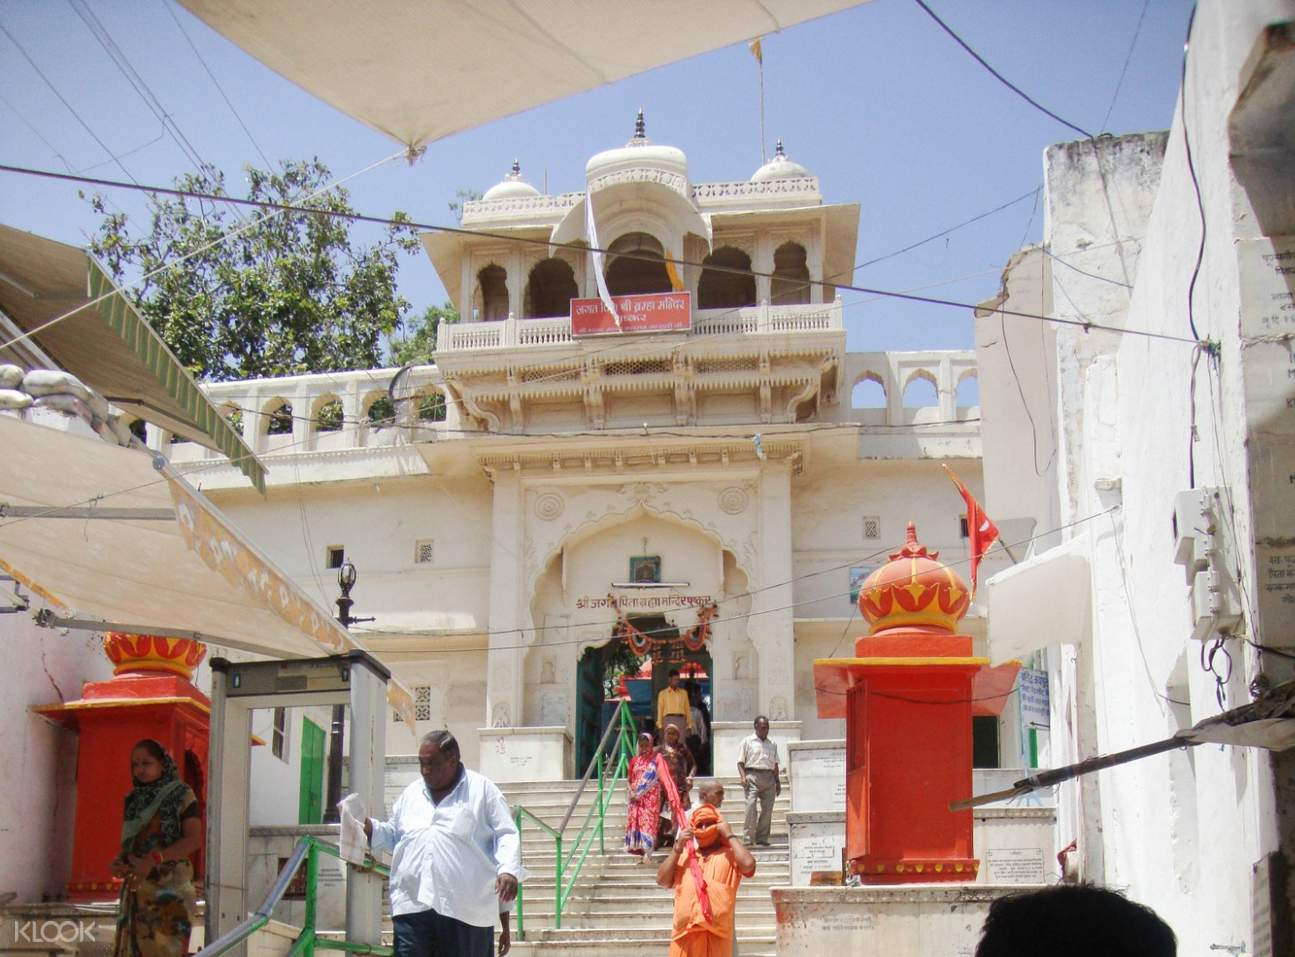 pushkar sightseeing trip